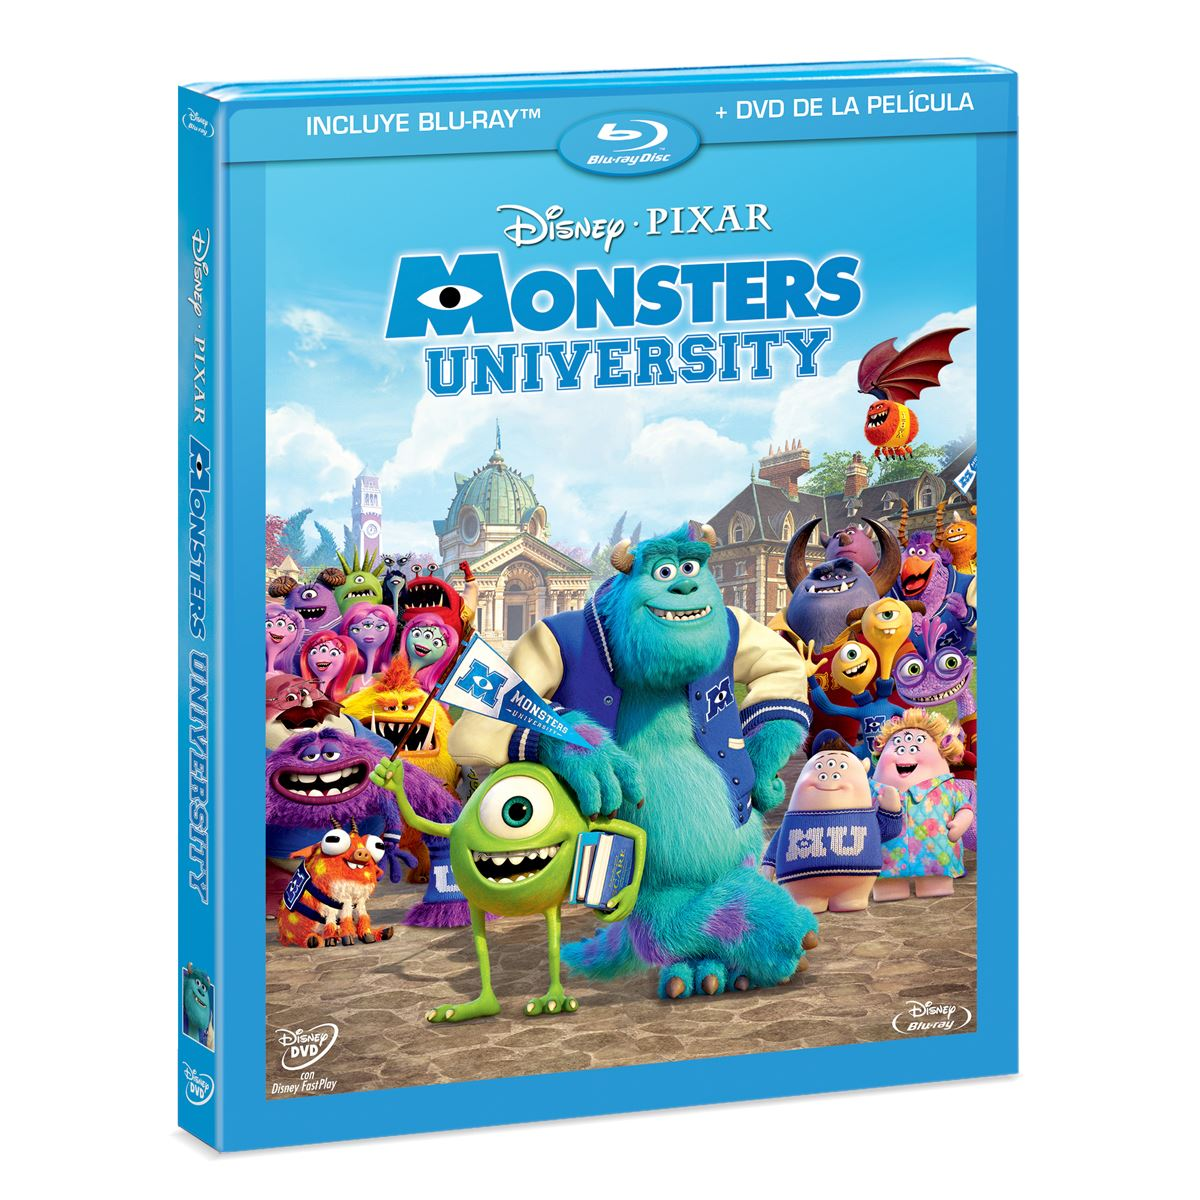 Br/dvd monsters university hibrido  - Sanborns